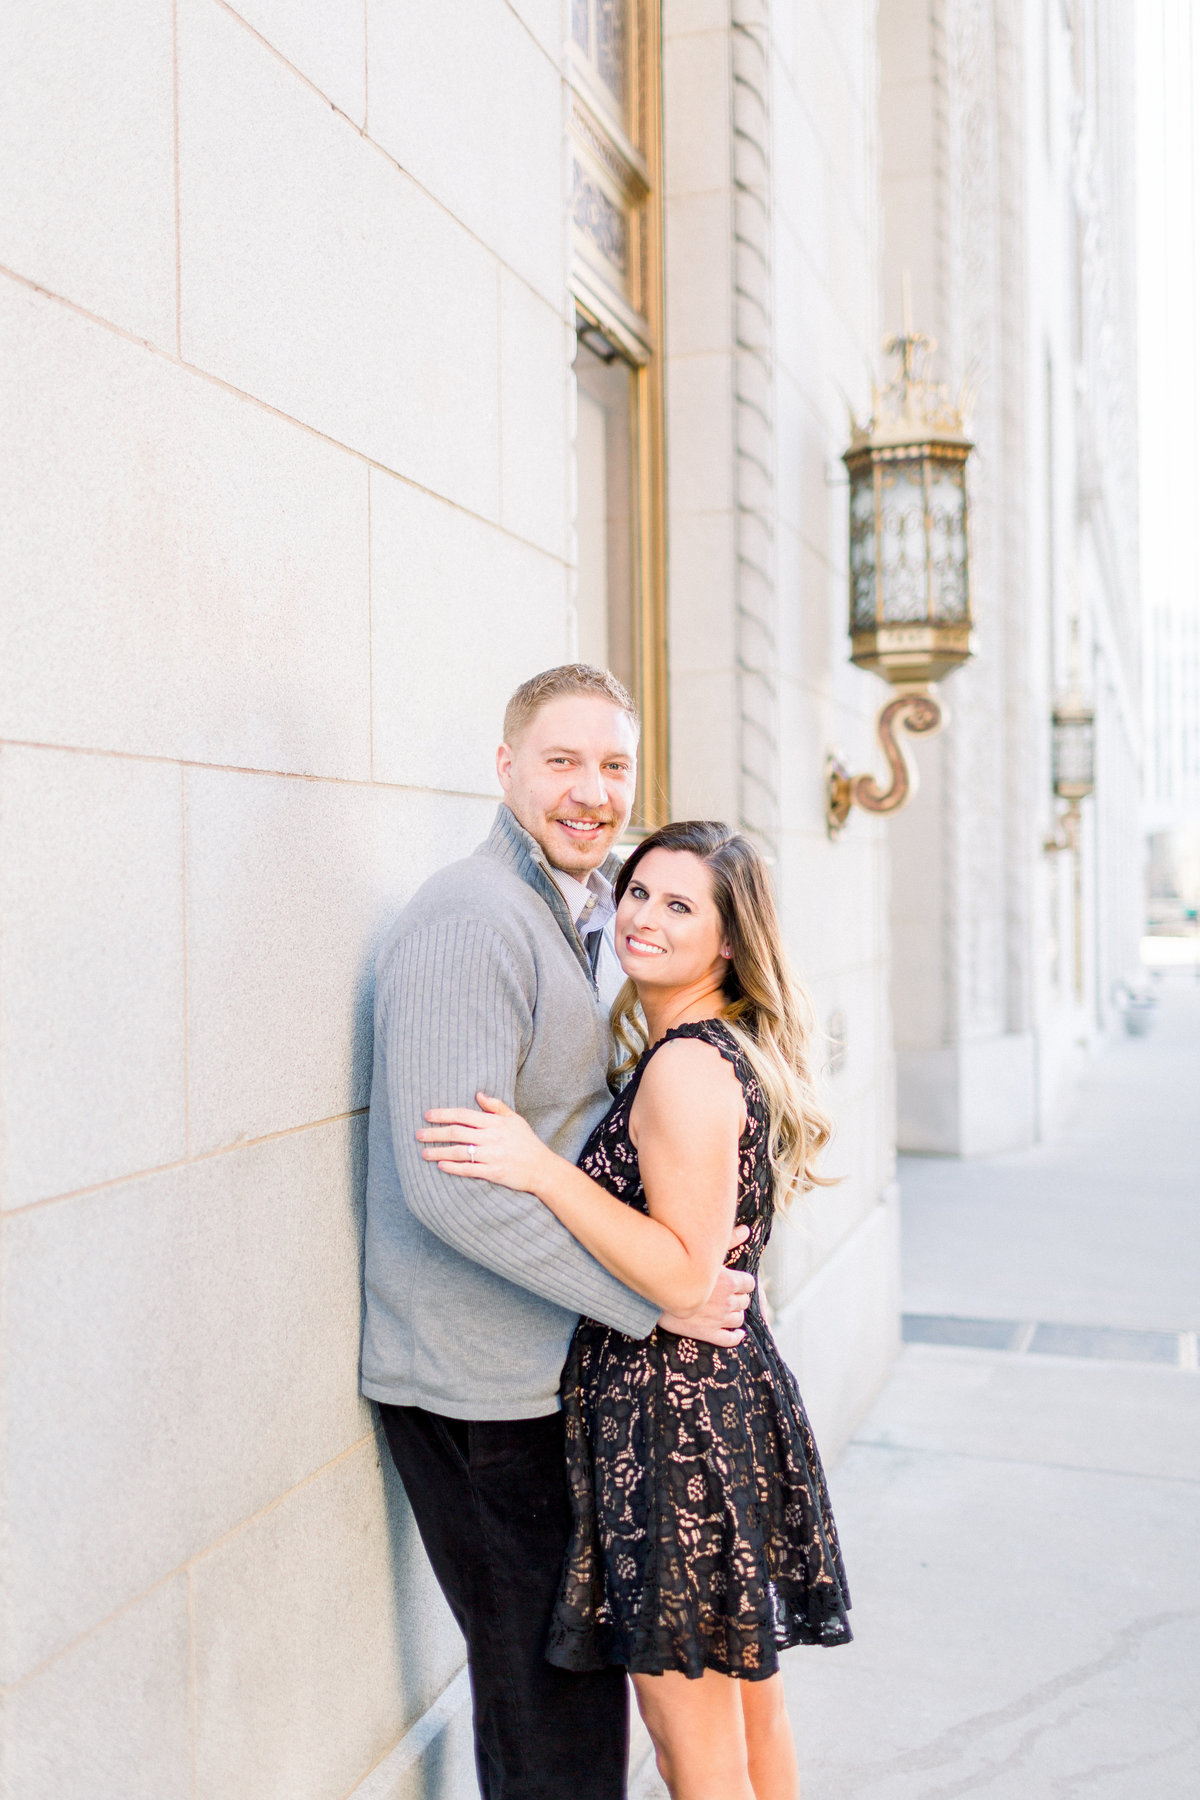 Galleries-Nathan and Jaime Engagement Session-0001